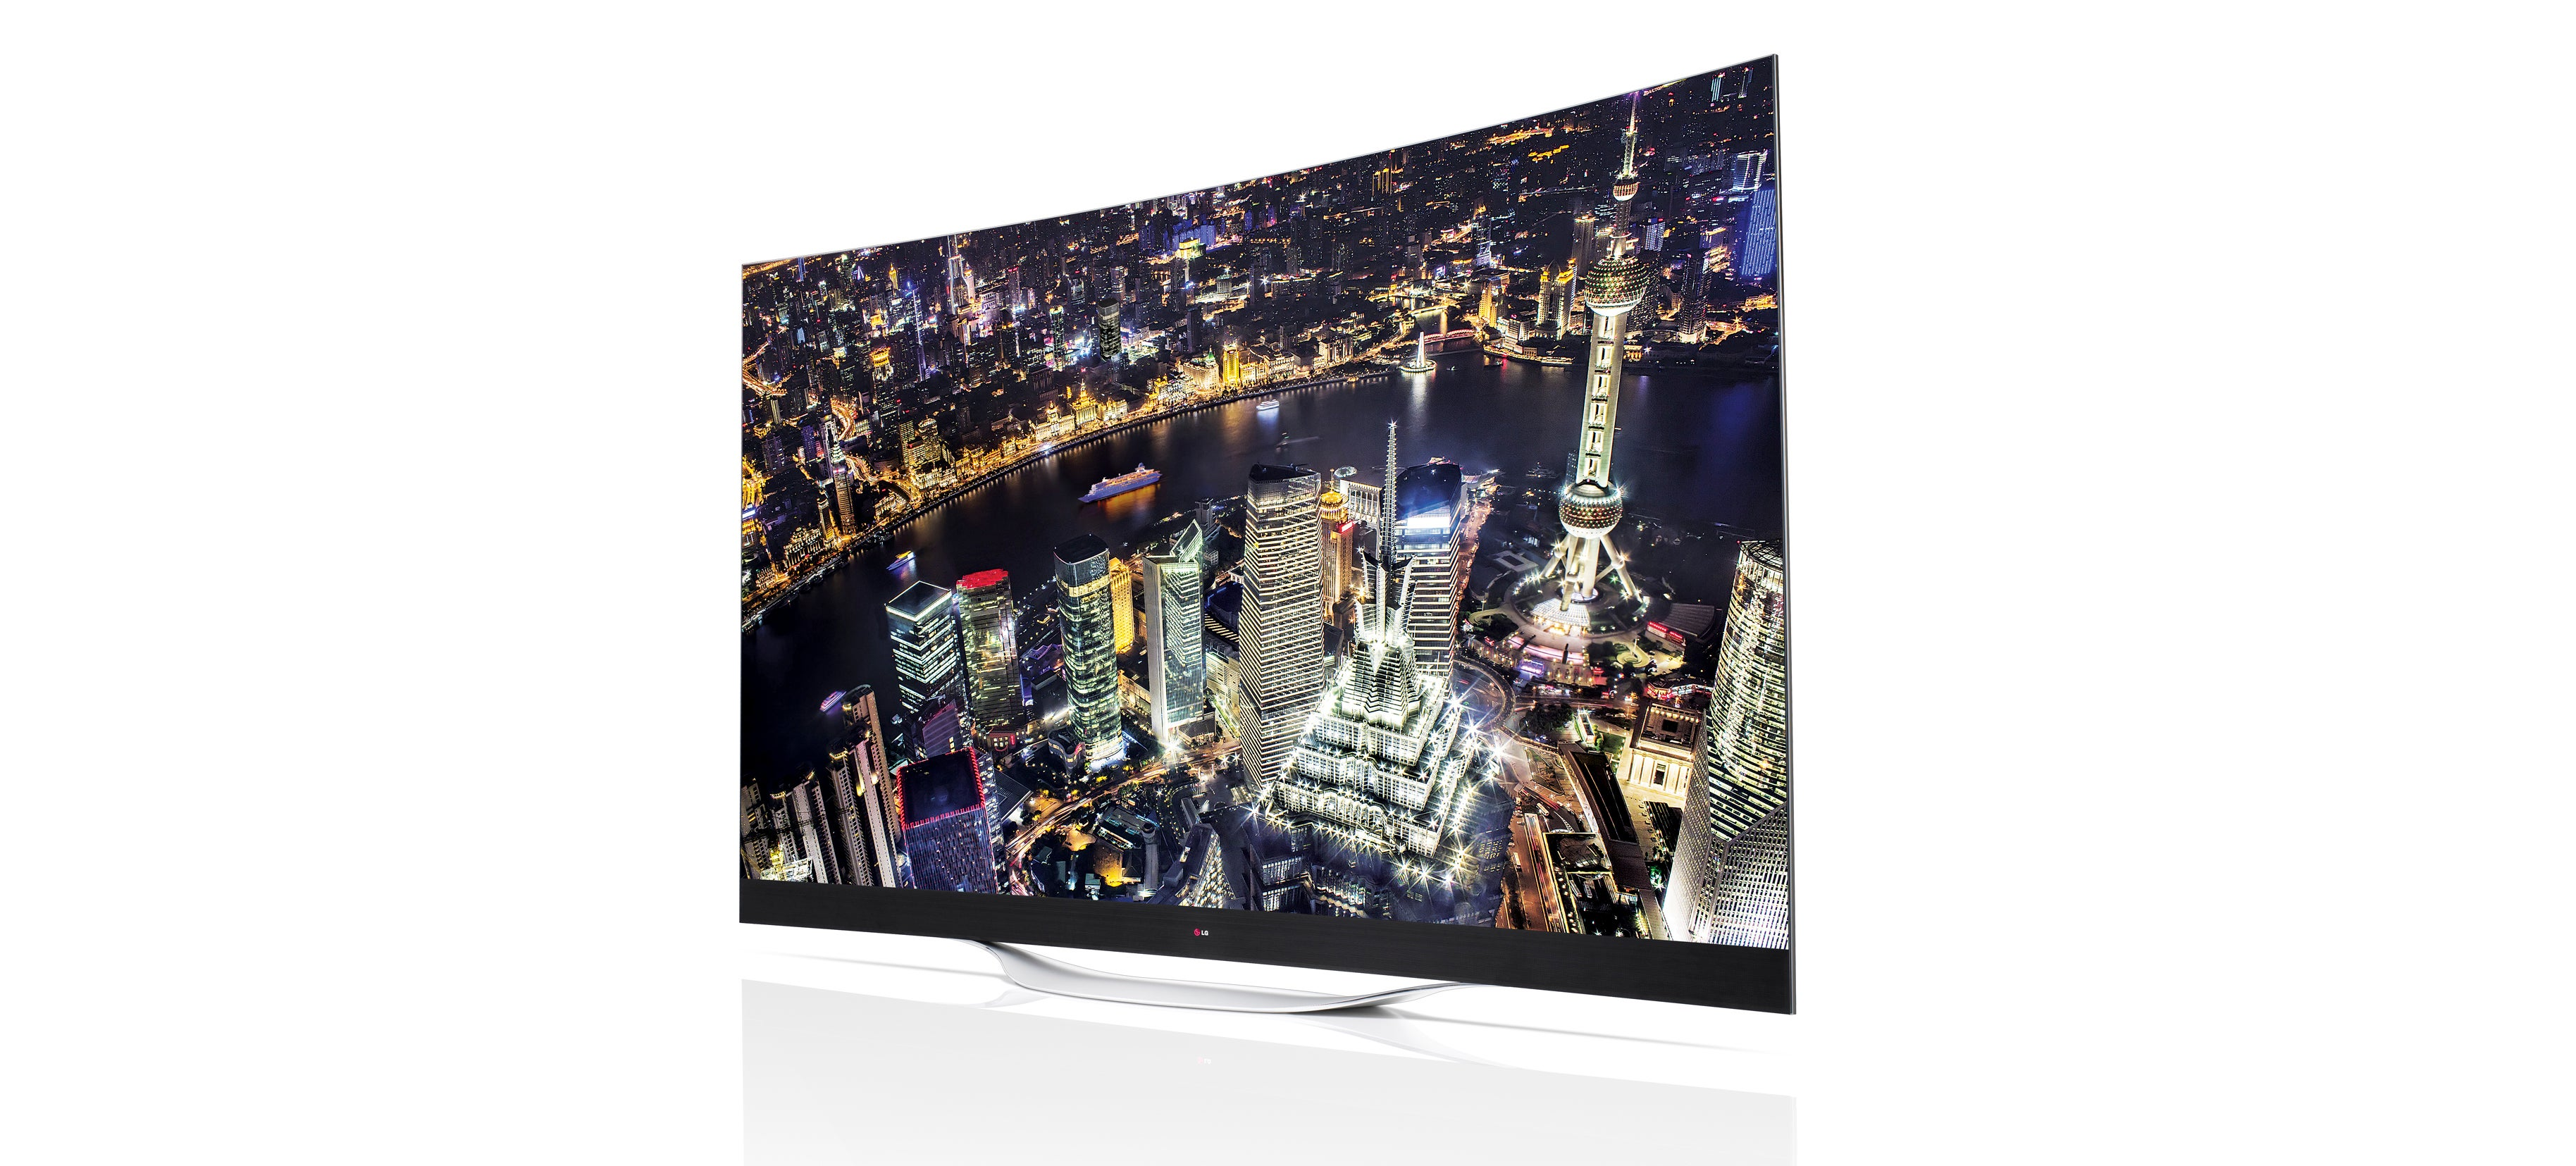 The First 4K OLED TV You Can Buy Will Cost $US11,000